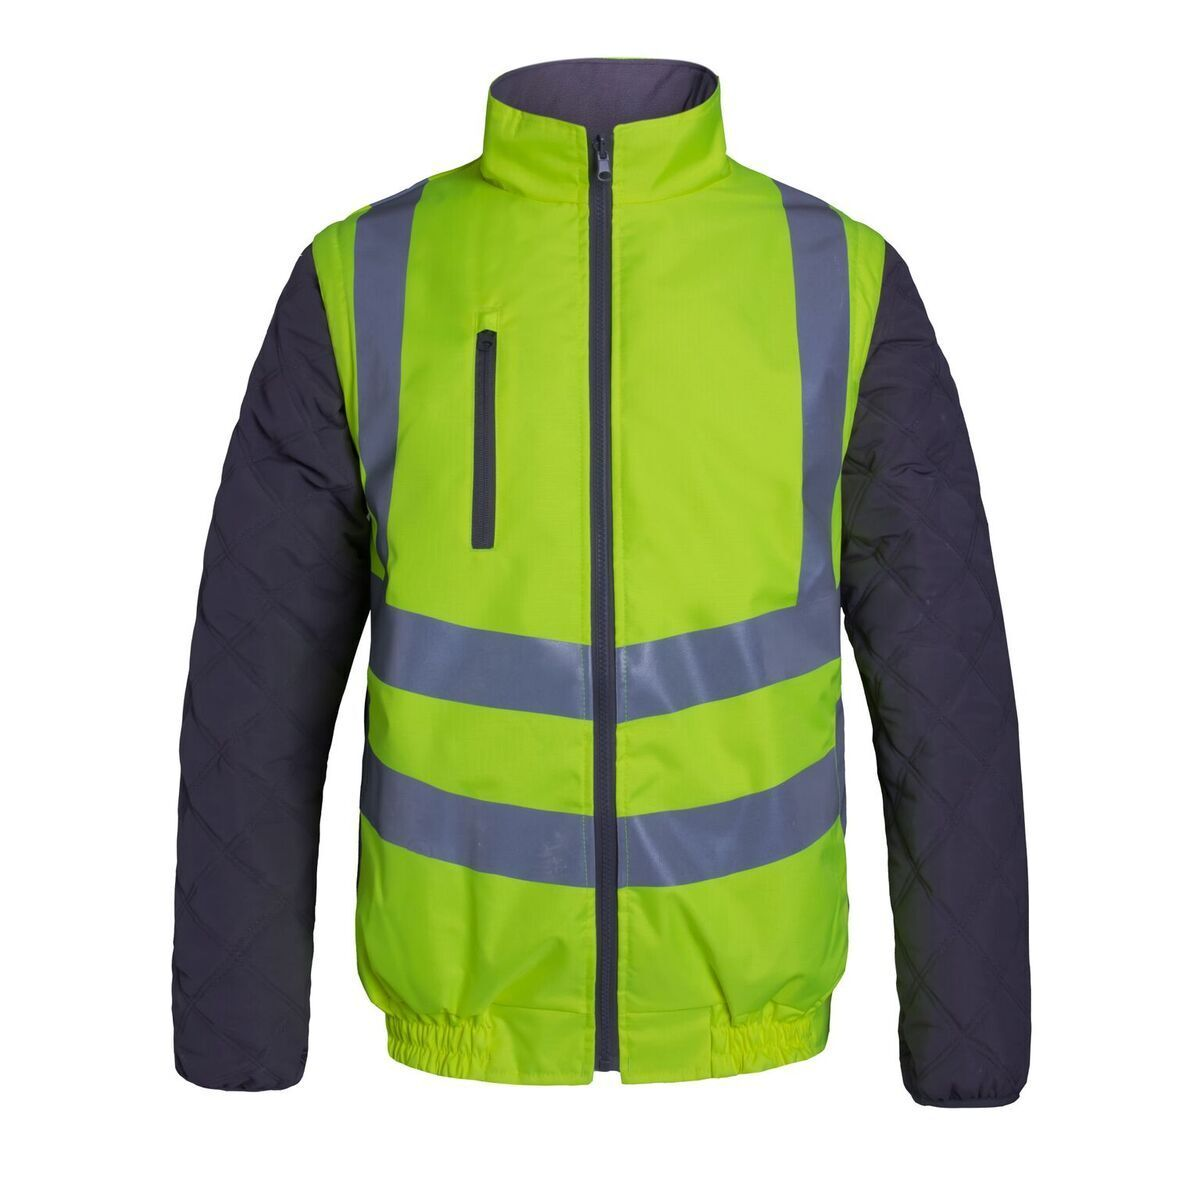 Aqua High Visibility Reversible PU Polyester Bodywarmer Gilet Detachable Sleeves